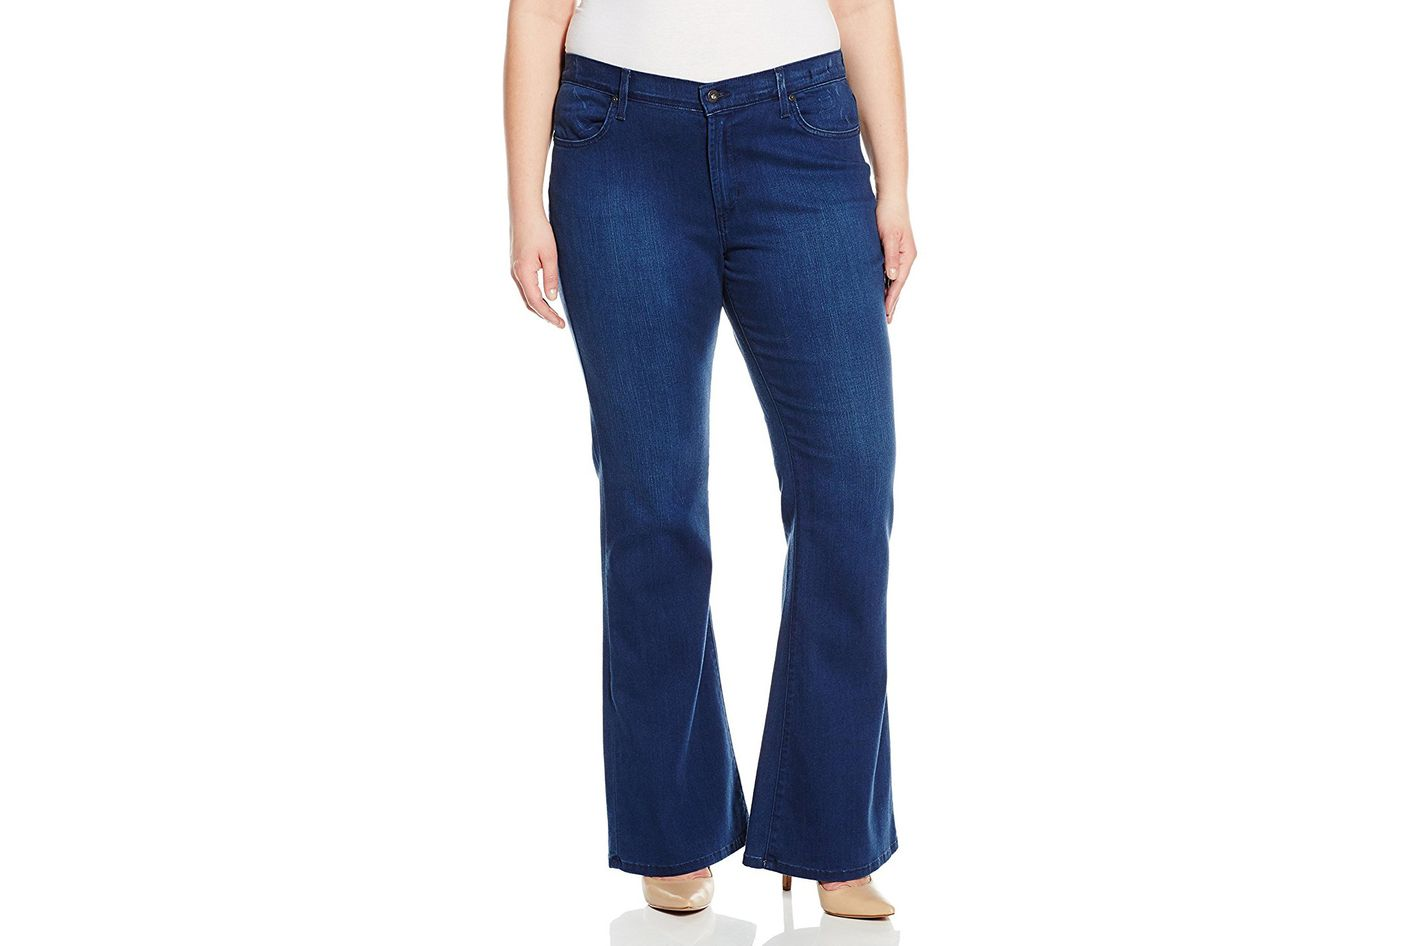 James Jeans Juliette Flares